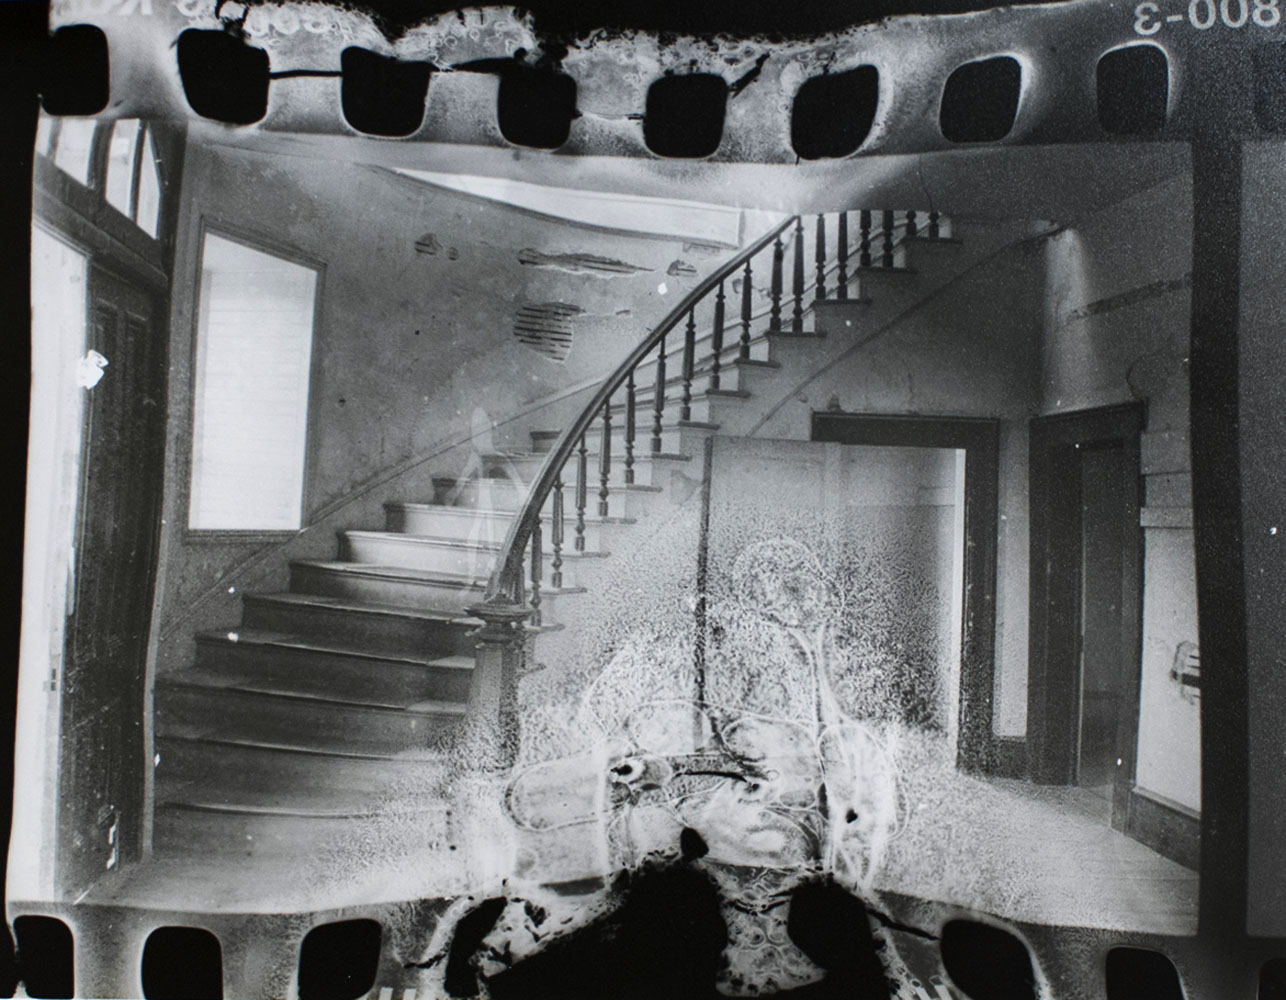 Untitled,  2002.Notable for the chance apparition on the staircase, this image was taken in lobby of the Meade Hotel in the ghost town of Bannack, Montana by a former student of Christina Z. Anderson, who has been teaching the experimental process since 2001.